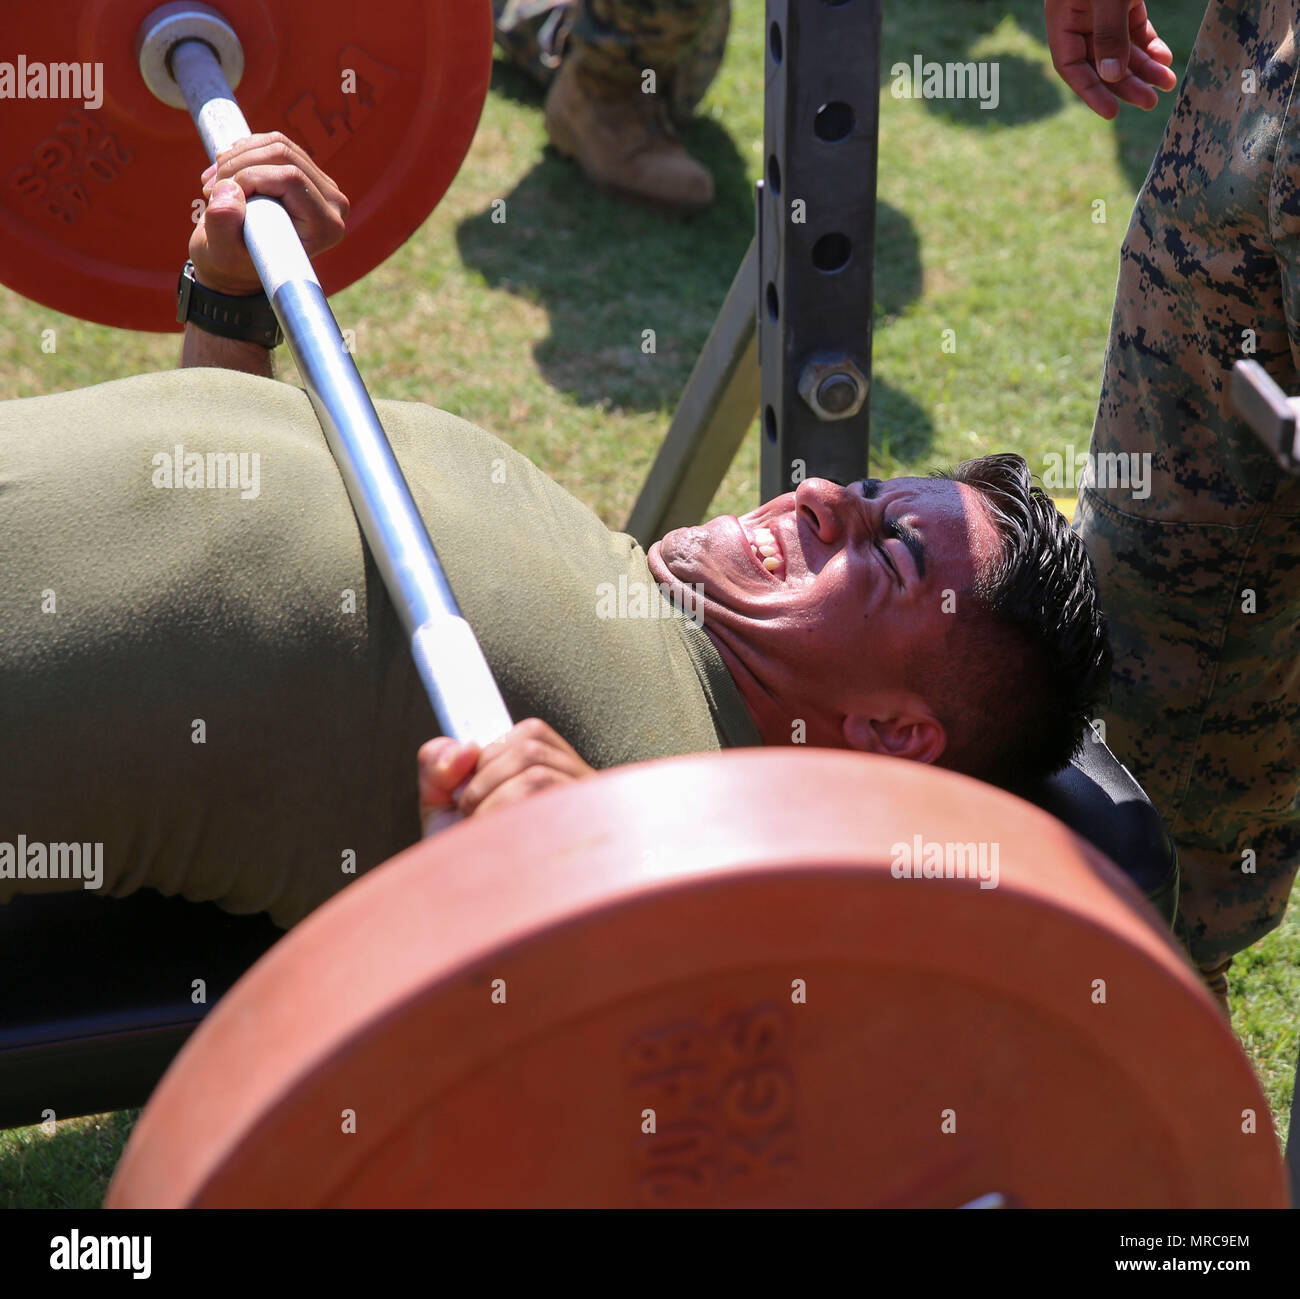 Cpl. Bryant Morillon competes in the bench press competition during a combine hosted by Marine Air Control Group 28 at Marine Corps Air Station Cherry Point, N.C., June 2, 2017.  Teams of 20 Marines from each squadron within the control group competed in multiple events which included a Humvee push, javelin throw and tire flip competition. Morillon is a warehouse clerk assigned to Marine Air Support Squadron 1, MACG-28, 2nd Marine Aircraft Wing. (U.S. Marine Corps photo by Lance Cpl. Cody Lemons/Released) Stock Photo